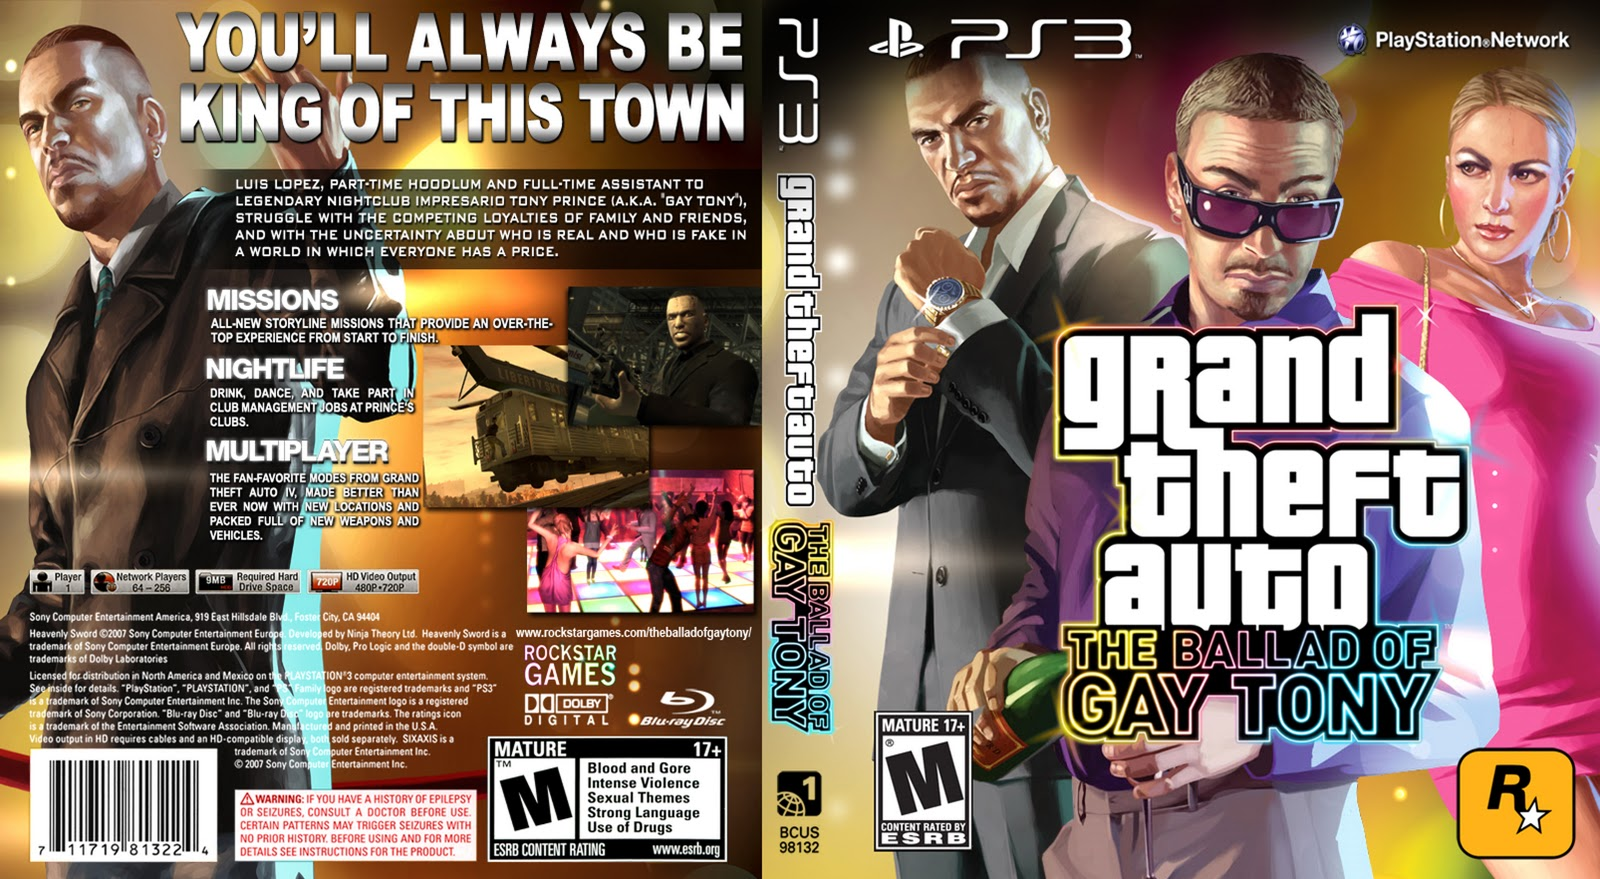 Gta iv ballad of gay tony release date